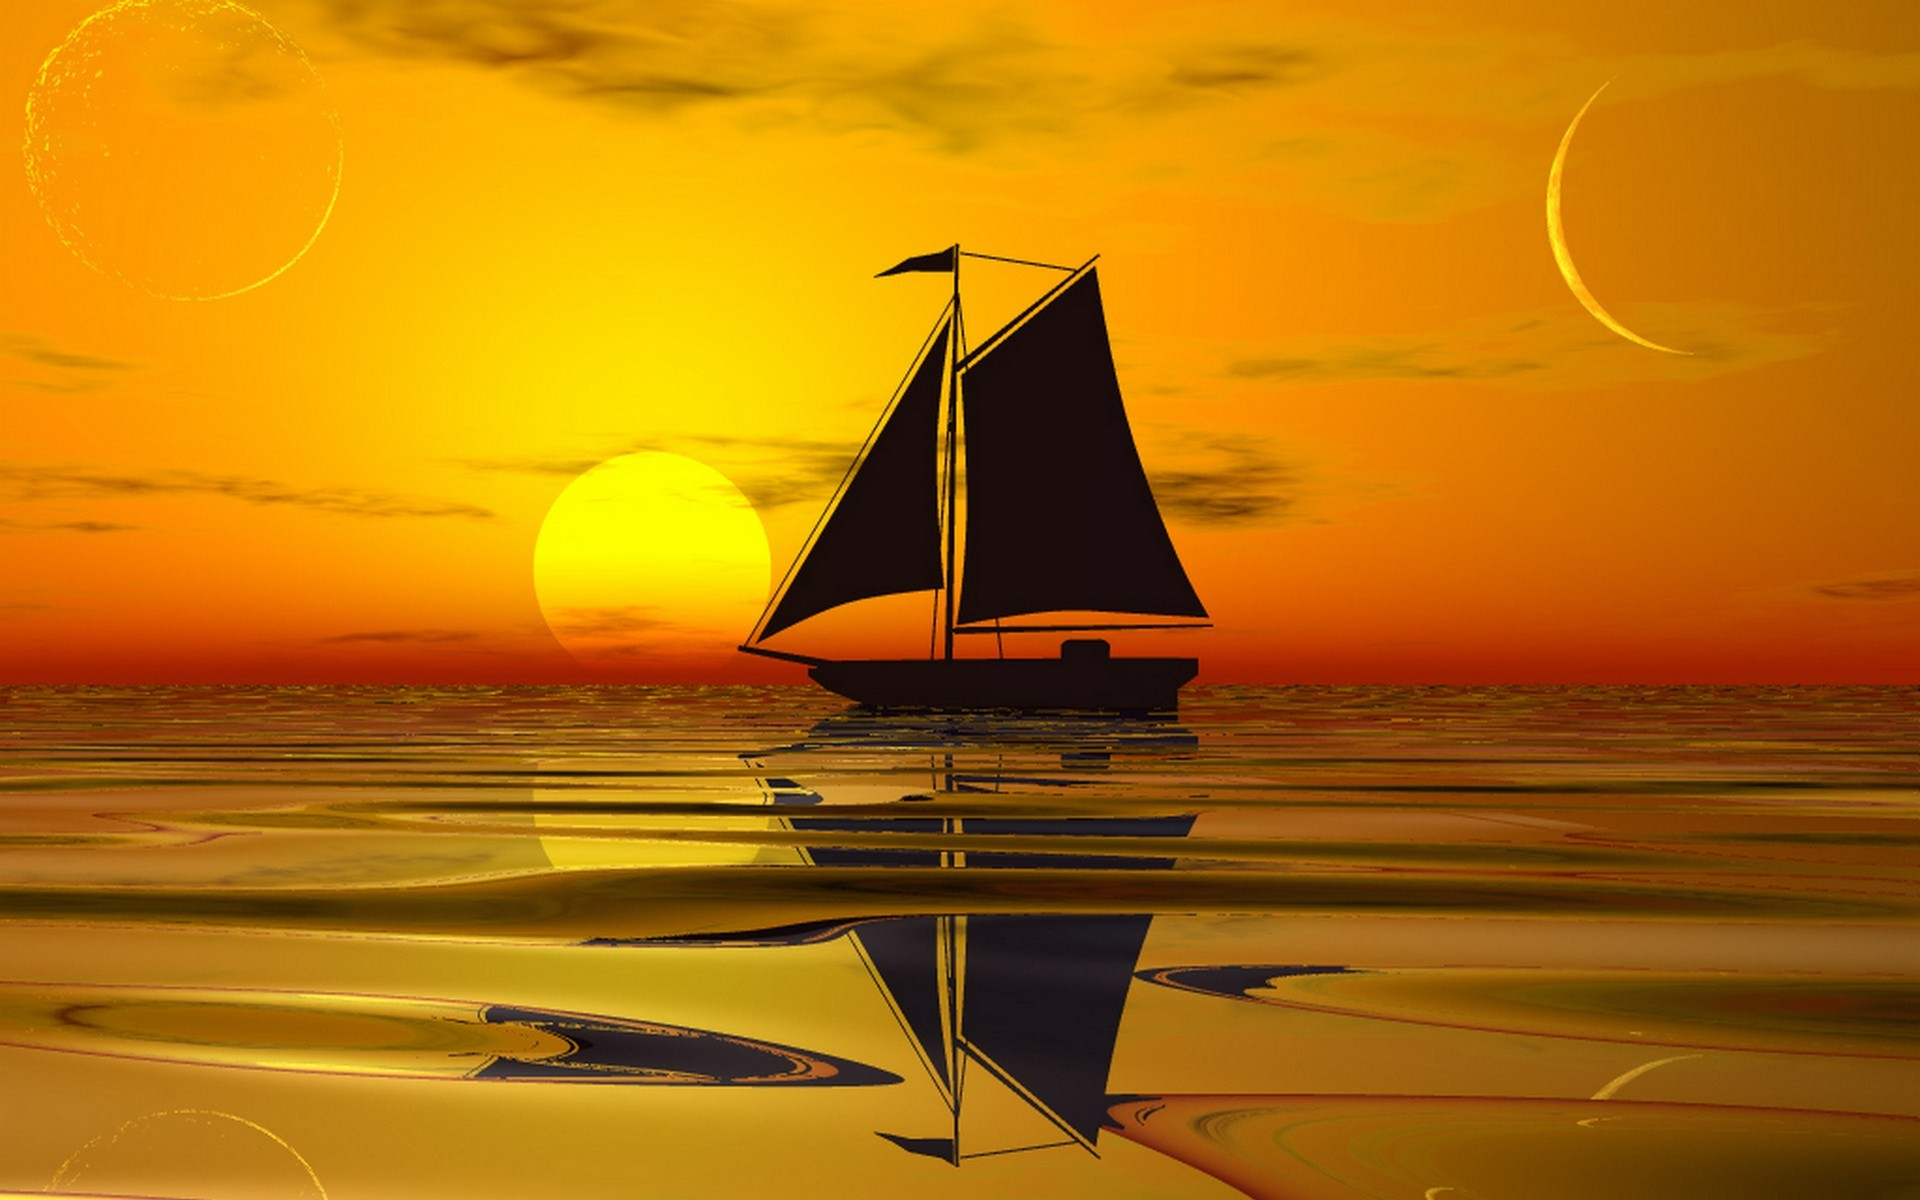 1920x1200 GL Backgrounds Collection; IHZ617: Sailboat Wallpaper  px Download